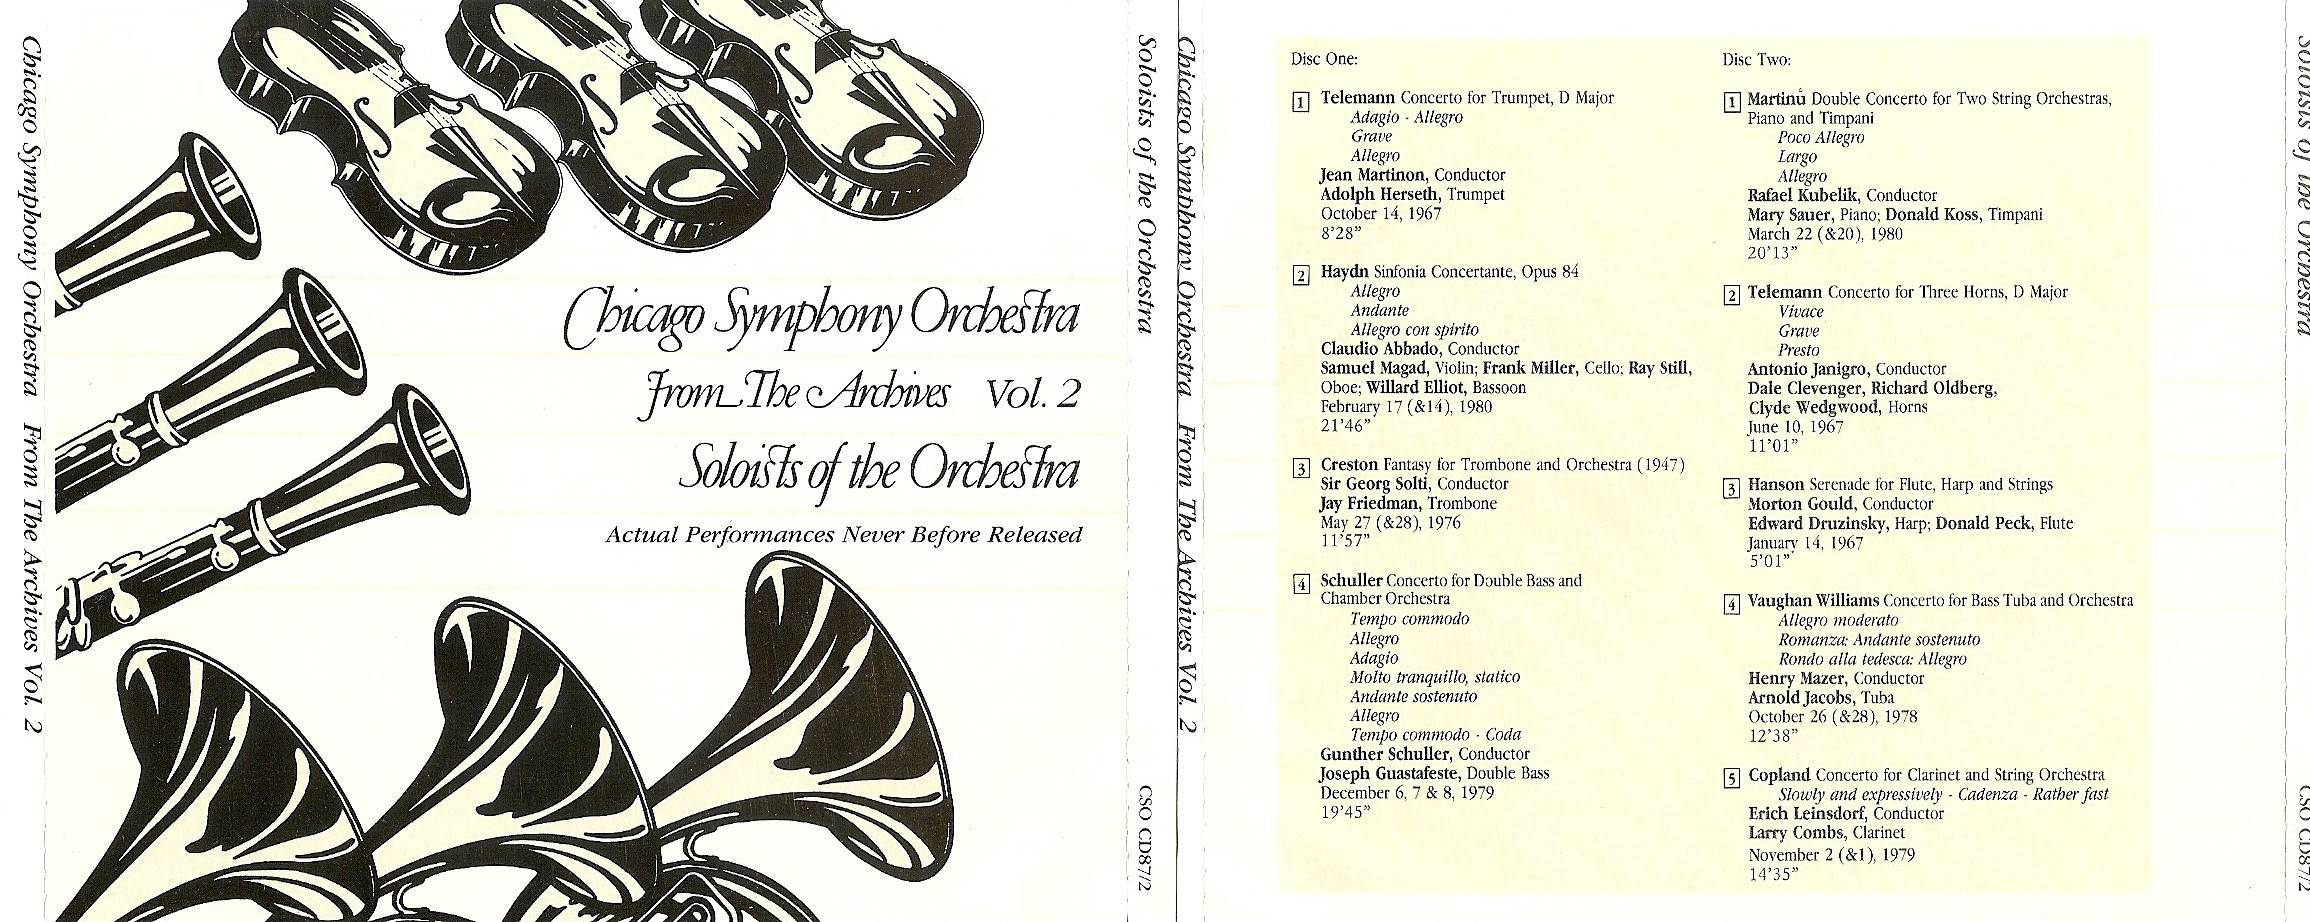 Chicago Symphony Orchestra - From The Archives, Vol.2: Soloists of the Orchestra, 2-CD set (1987)